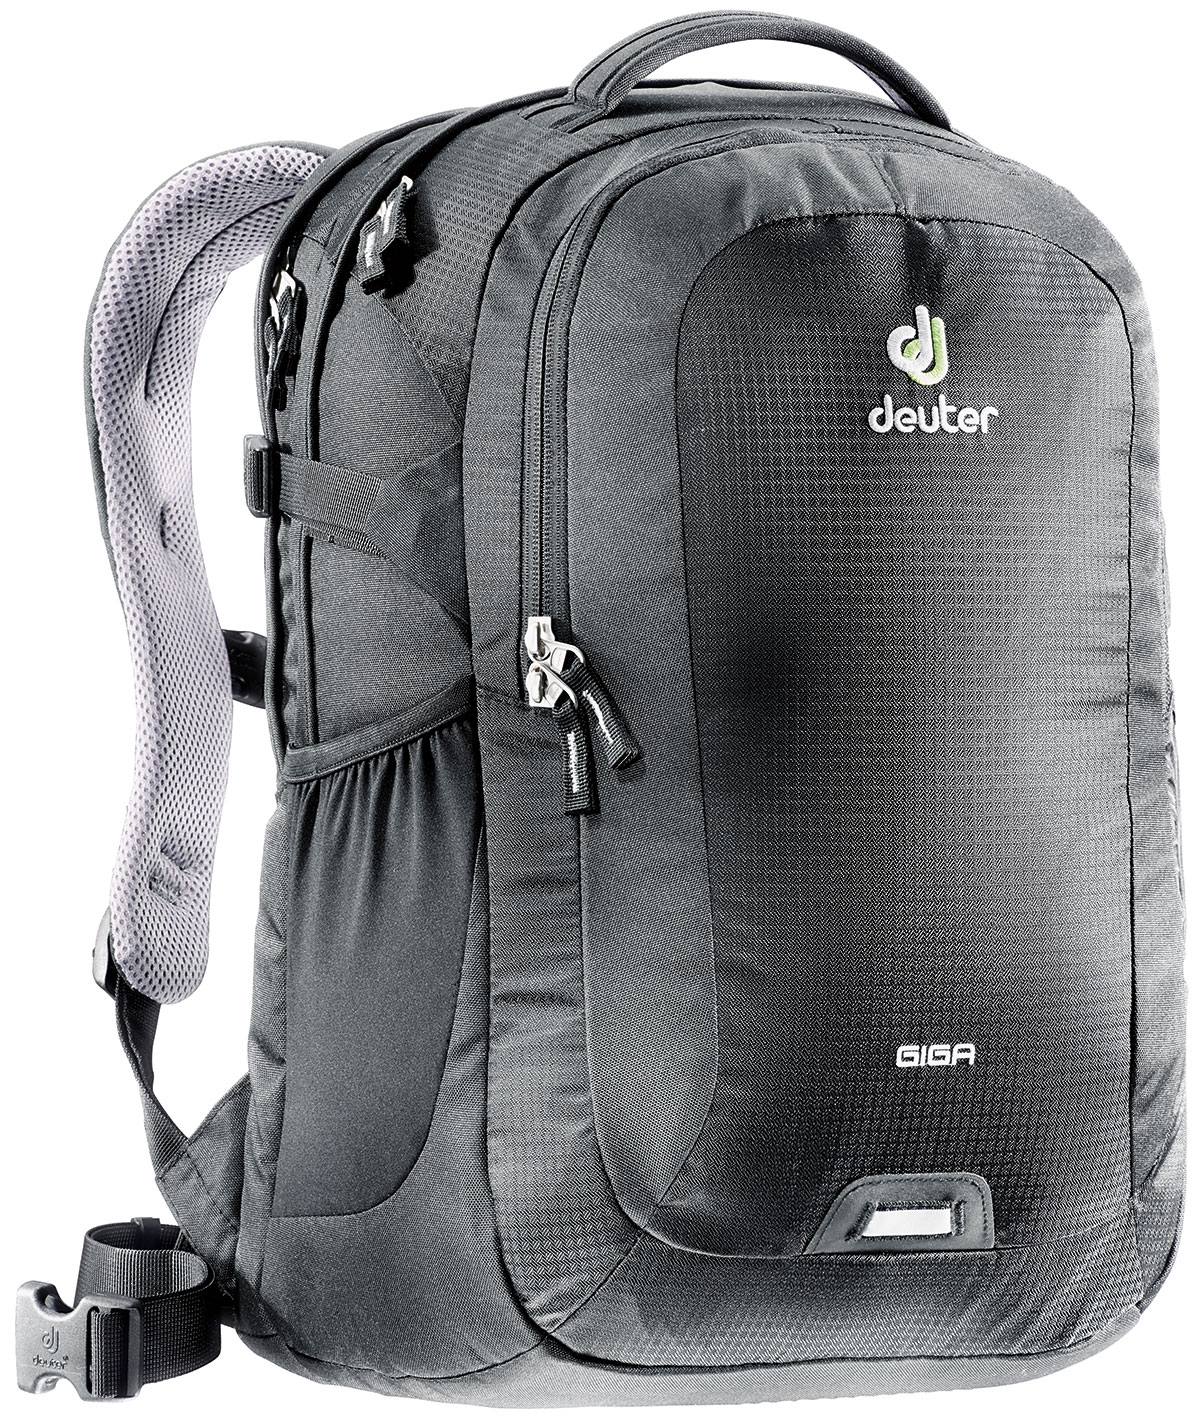 Deuter Giga black-30